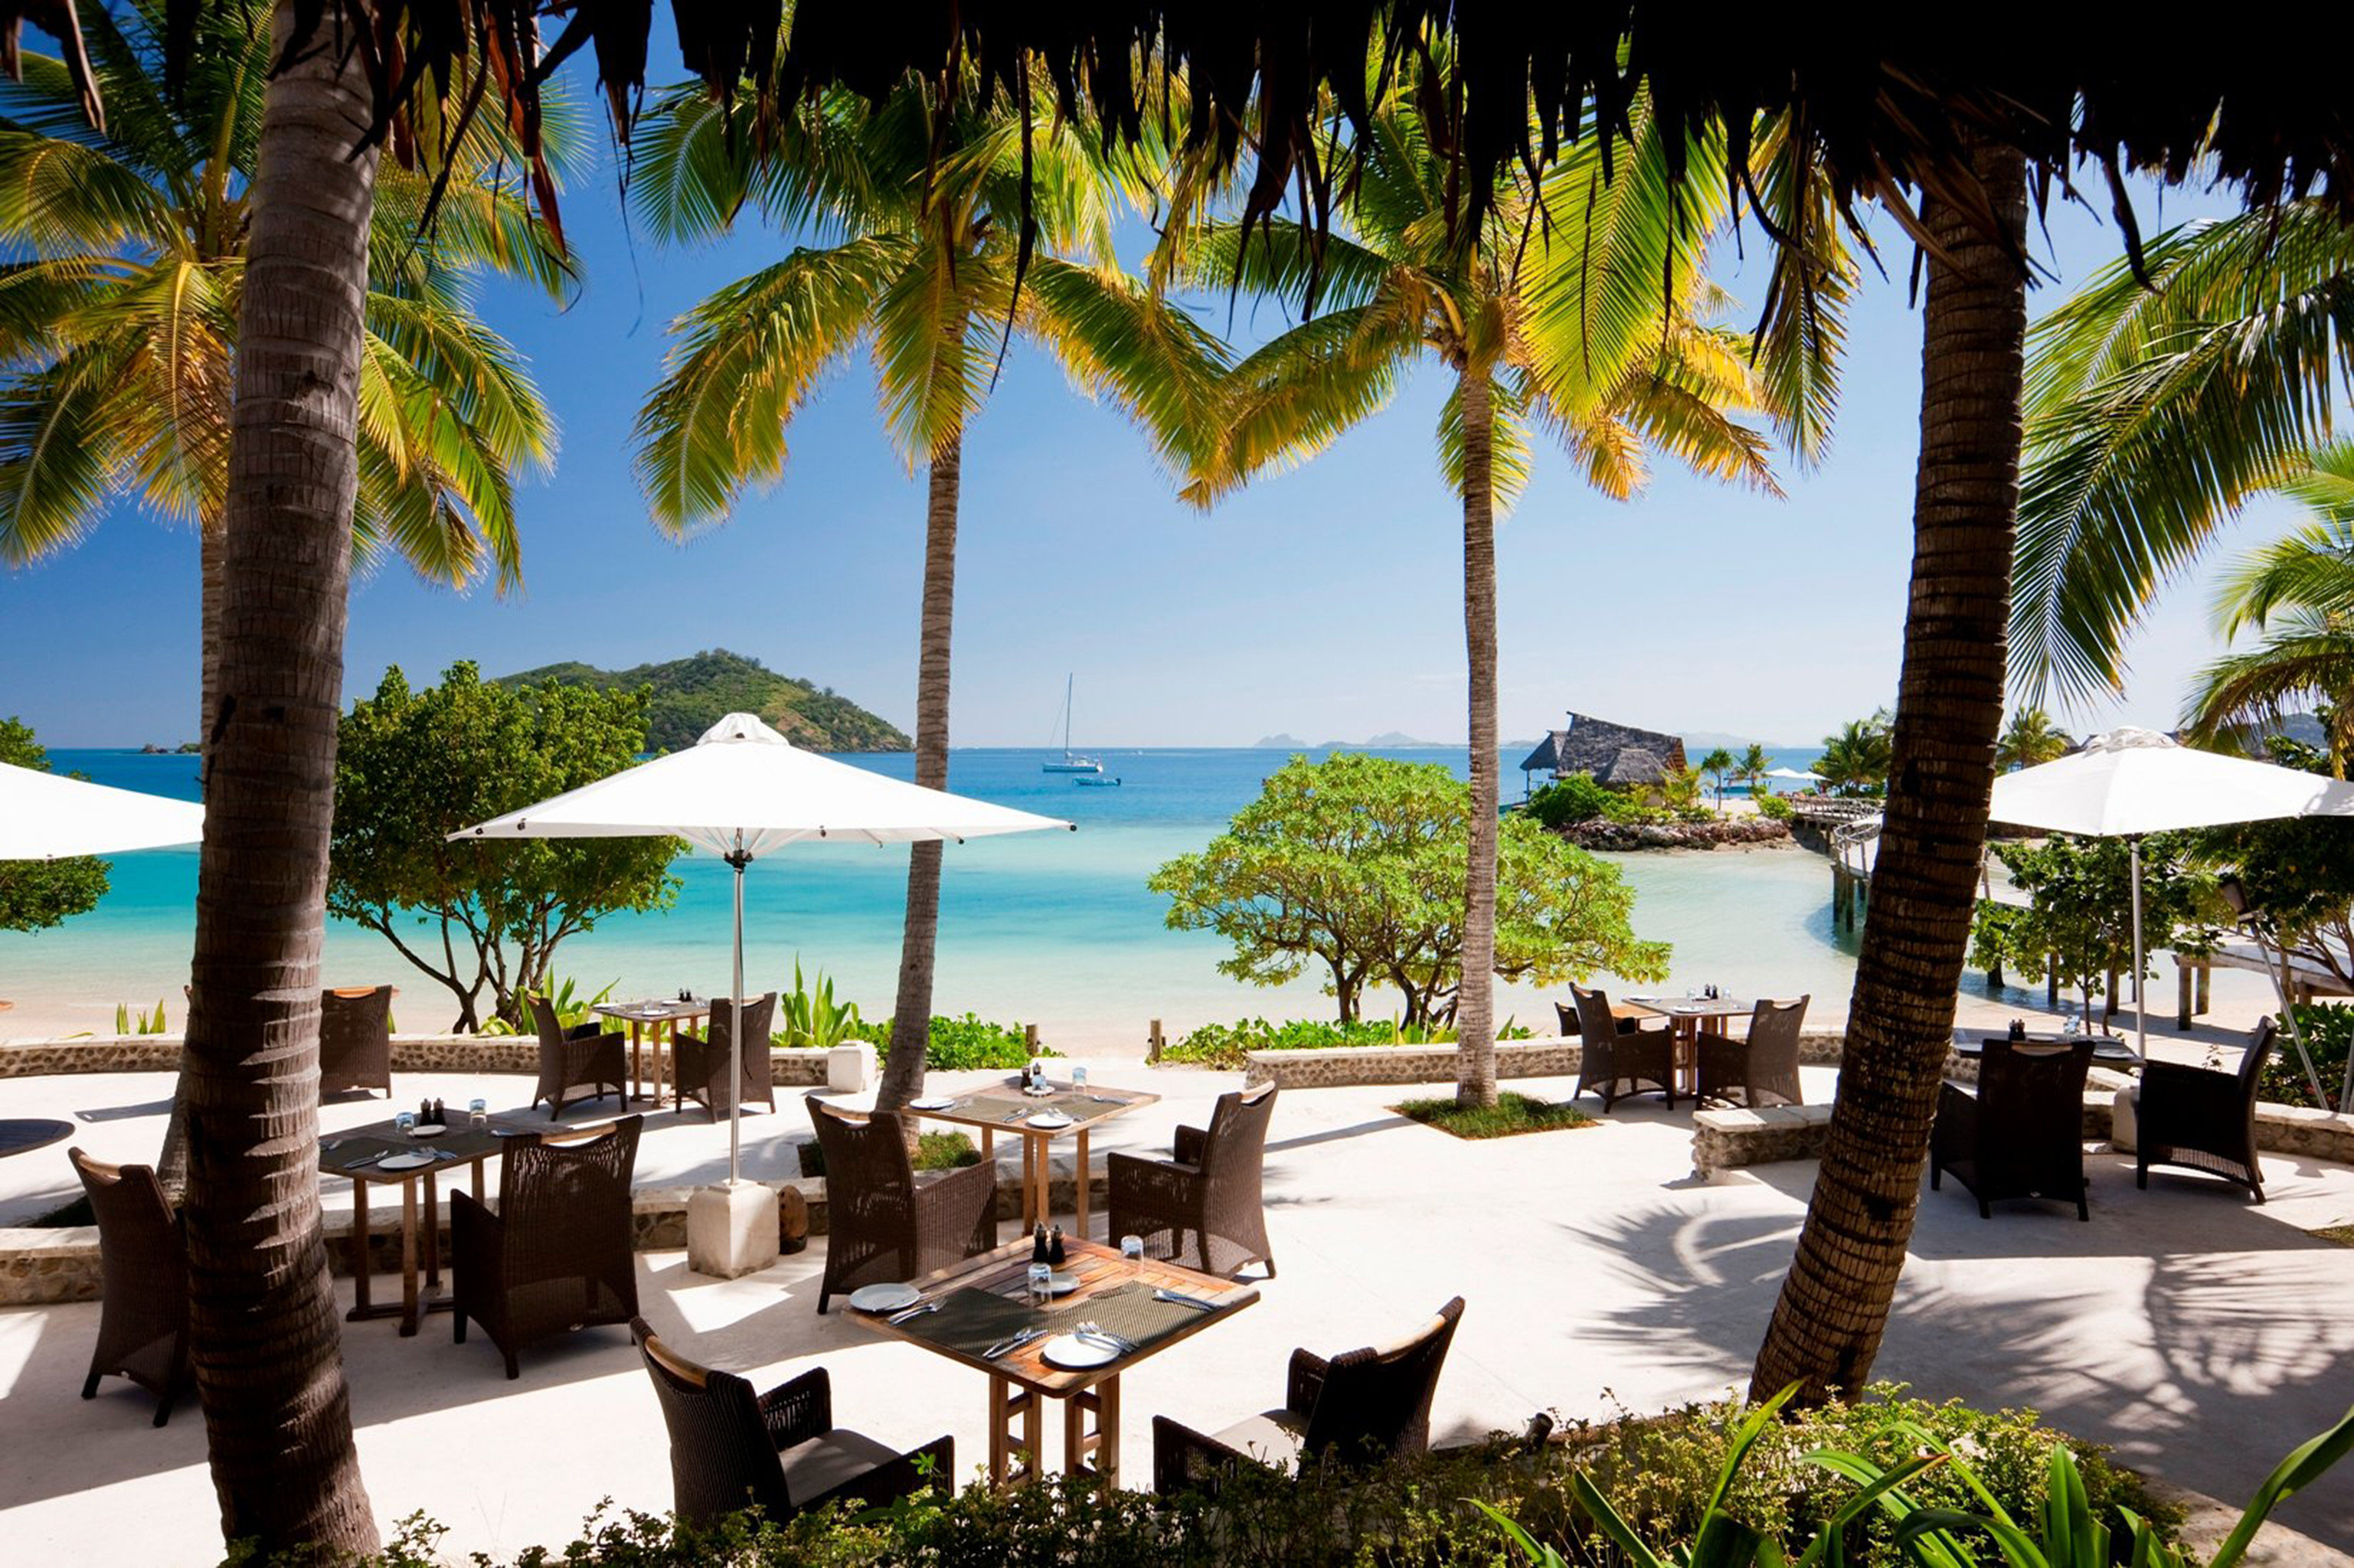 All-Inclusive Resorts Beach Boutique Hotels Dining Drink Eat Hotels Patio Romance Scenic views Terrace tree outdoor sky palm water leisure Resort plant vacation arecales caribbean estate tourism swimming pool palm family tropics Villa furniture lined shore shade several